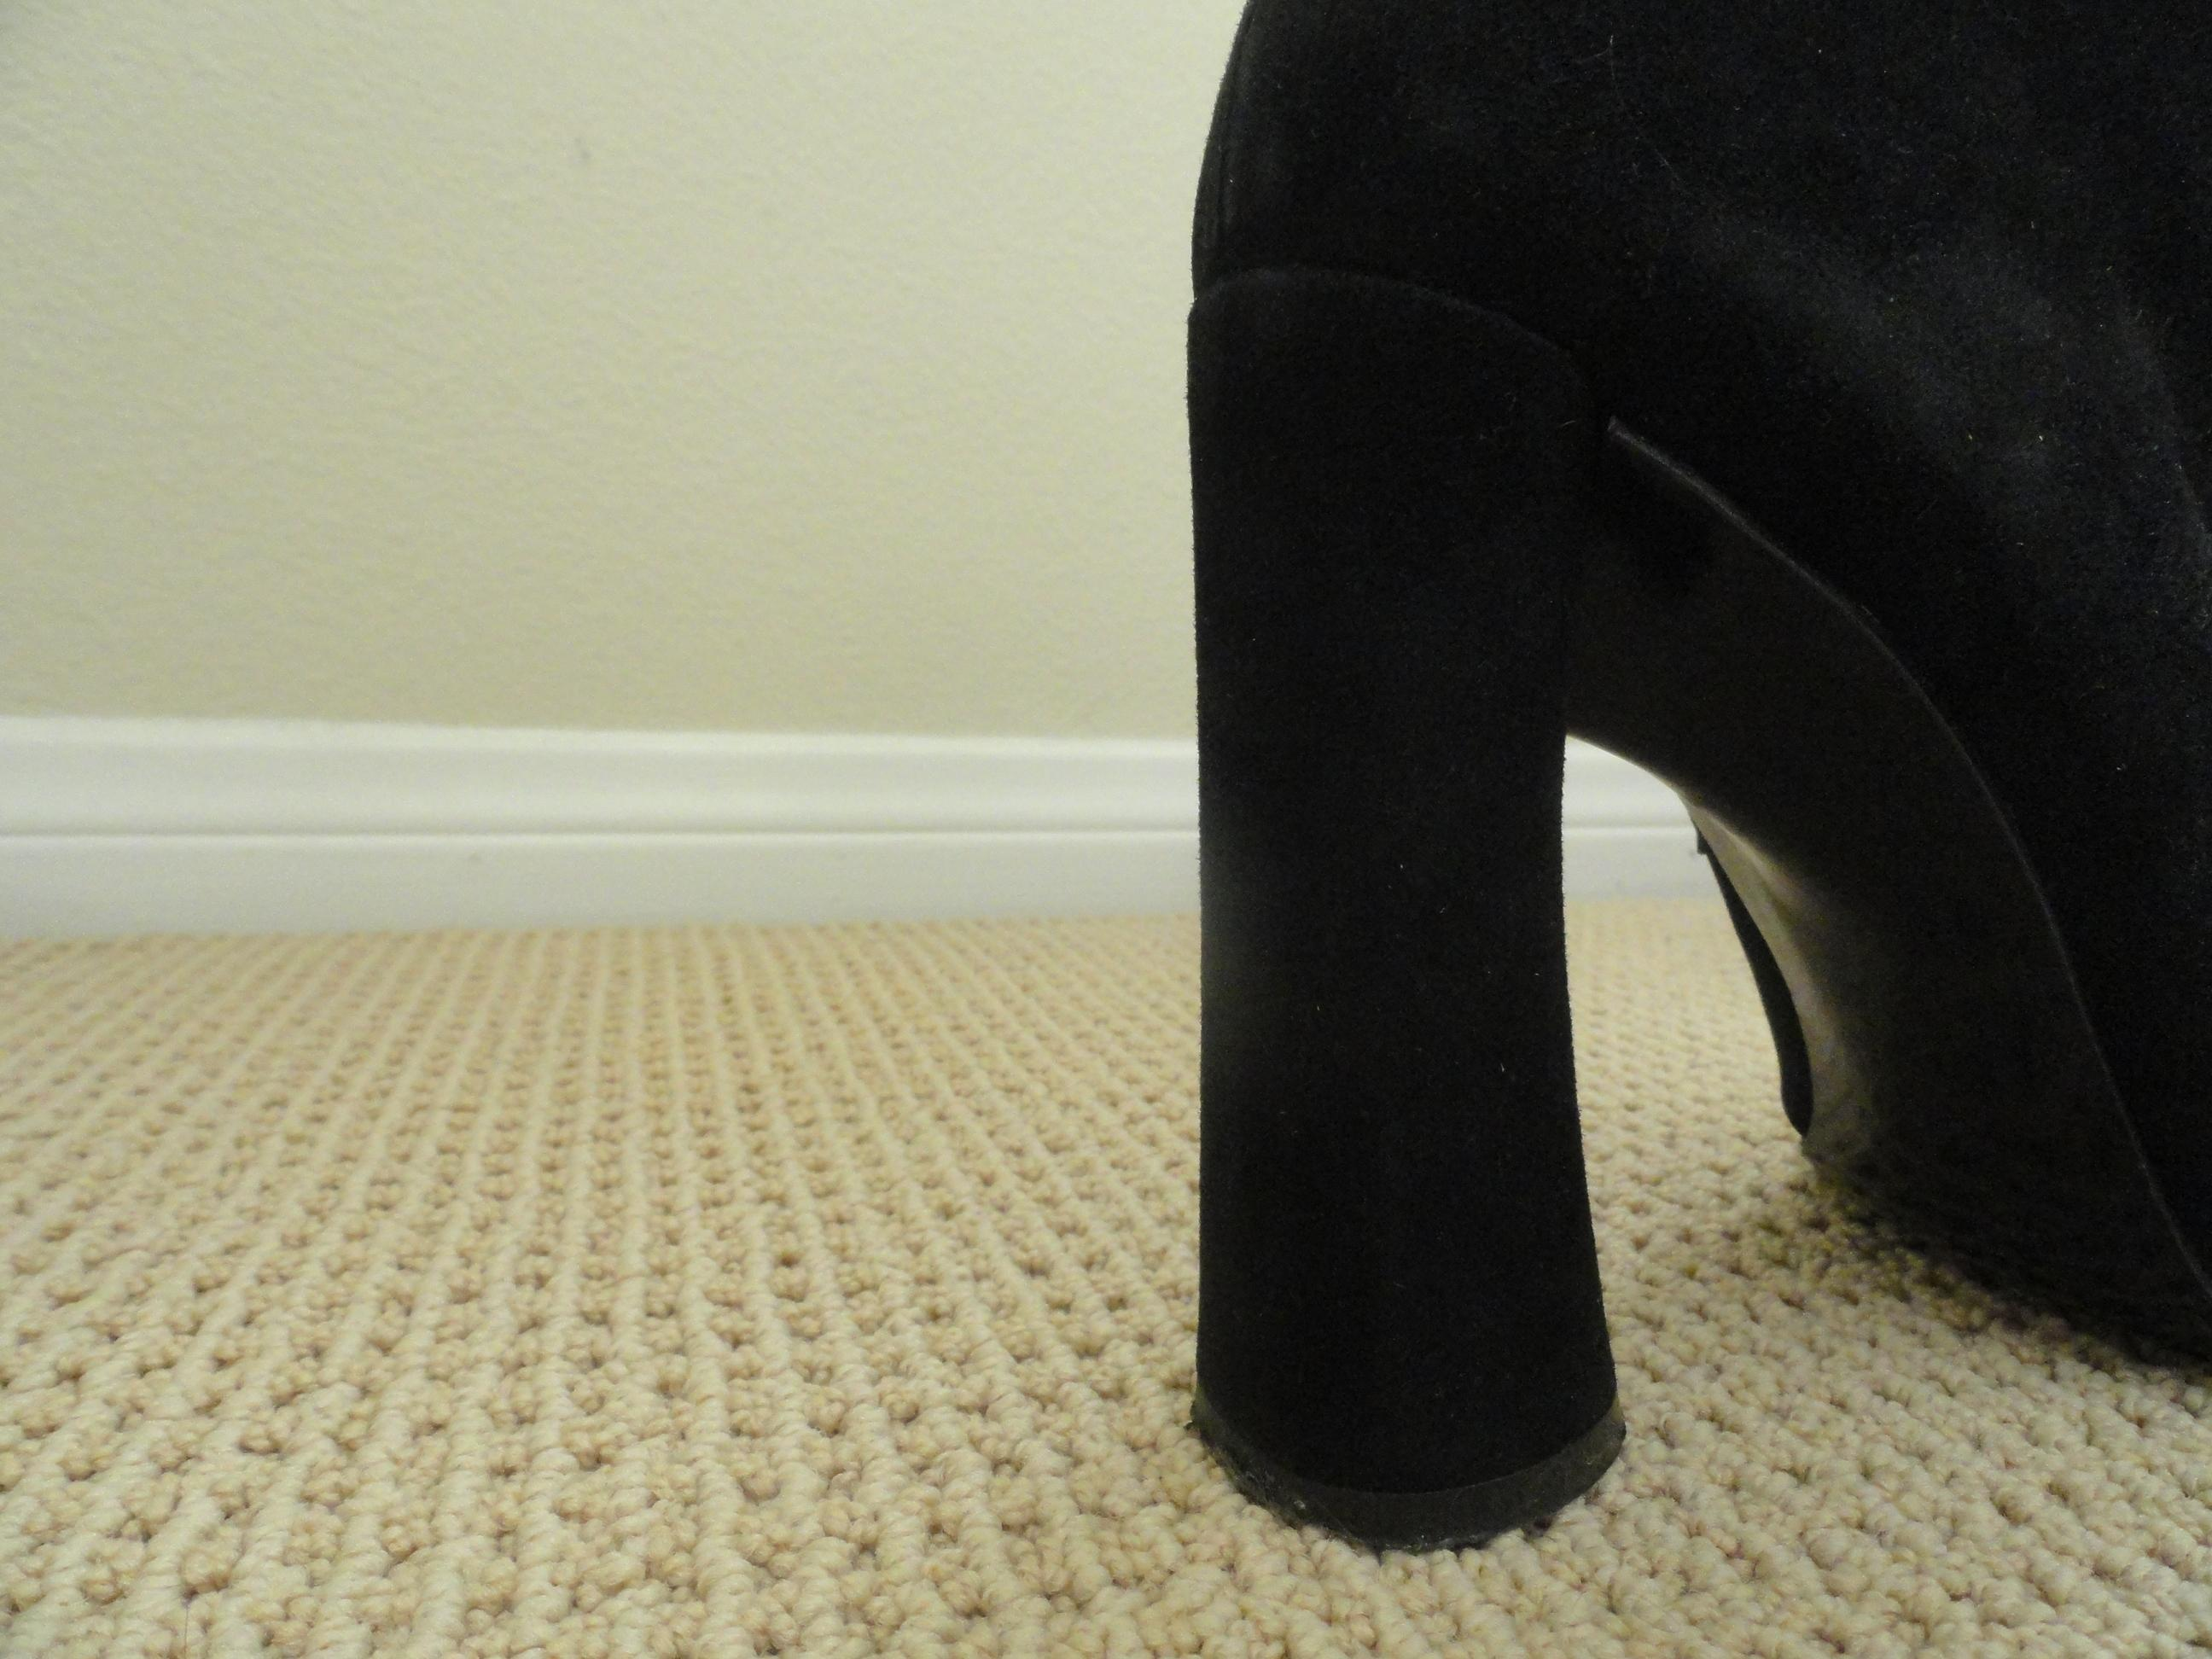 a86f7436e46a Karl Lagerfeld Lagerfeld Lagerfeld Black Suede Ankle Boots/Booties Size EU  39.5 (Approx.